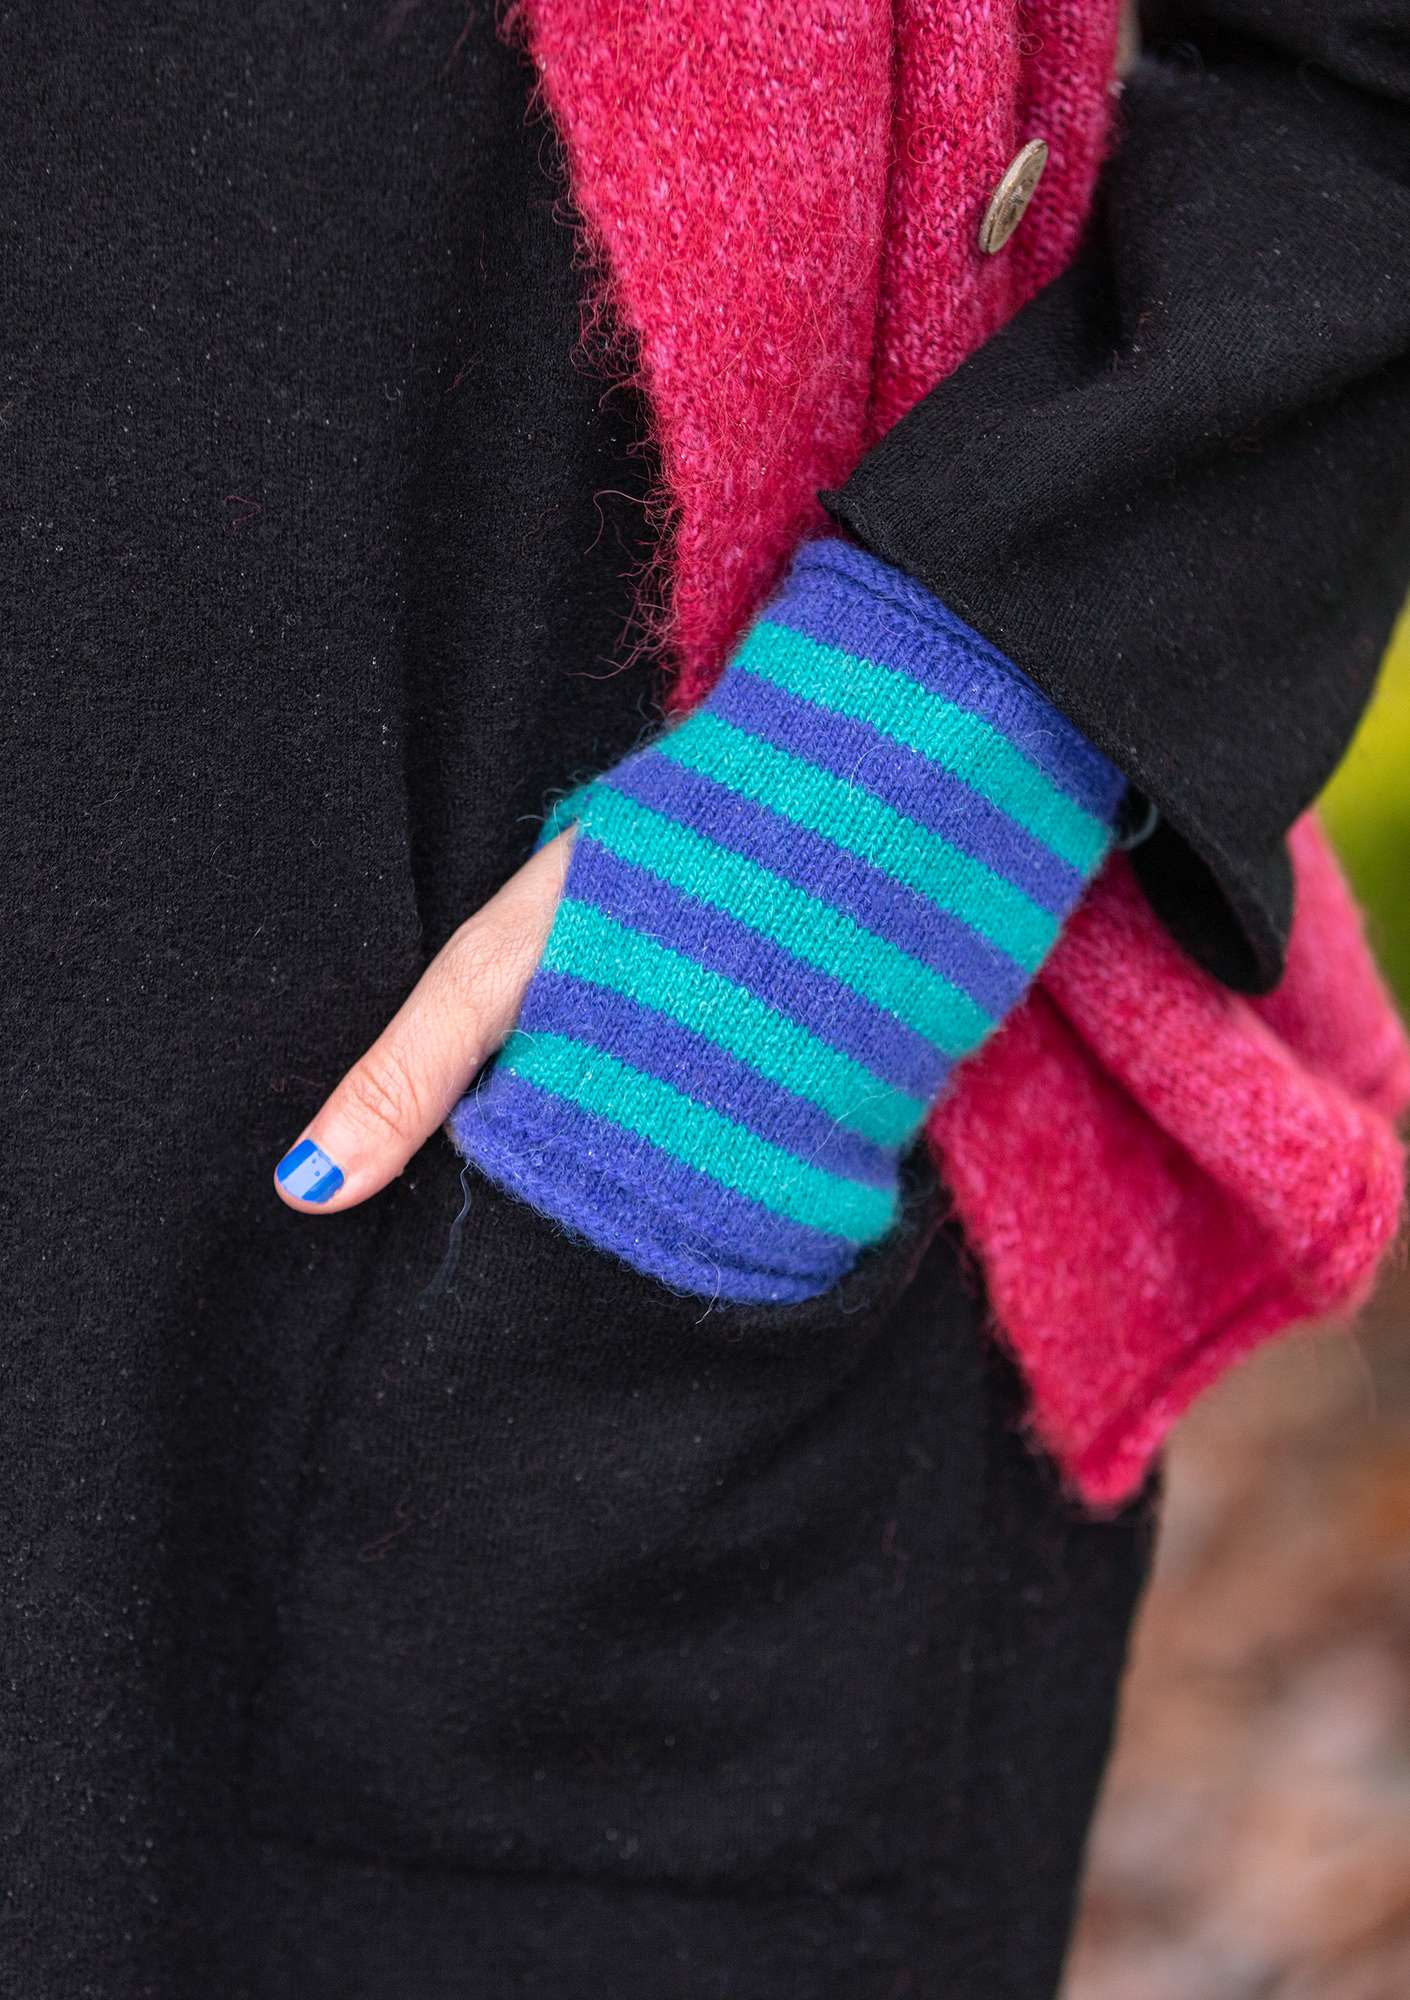 Knitted fingerless gloves lupin/aqua green